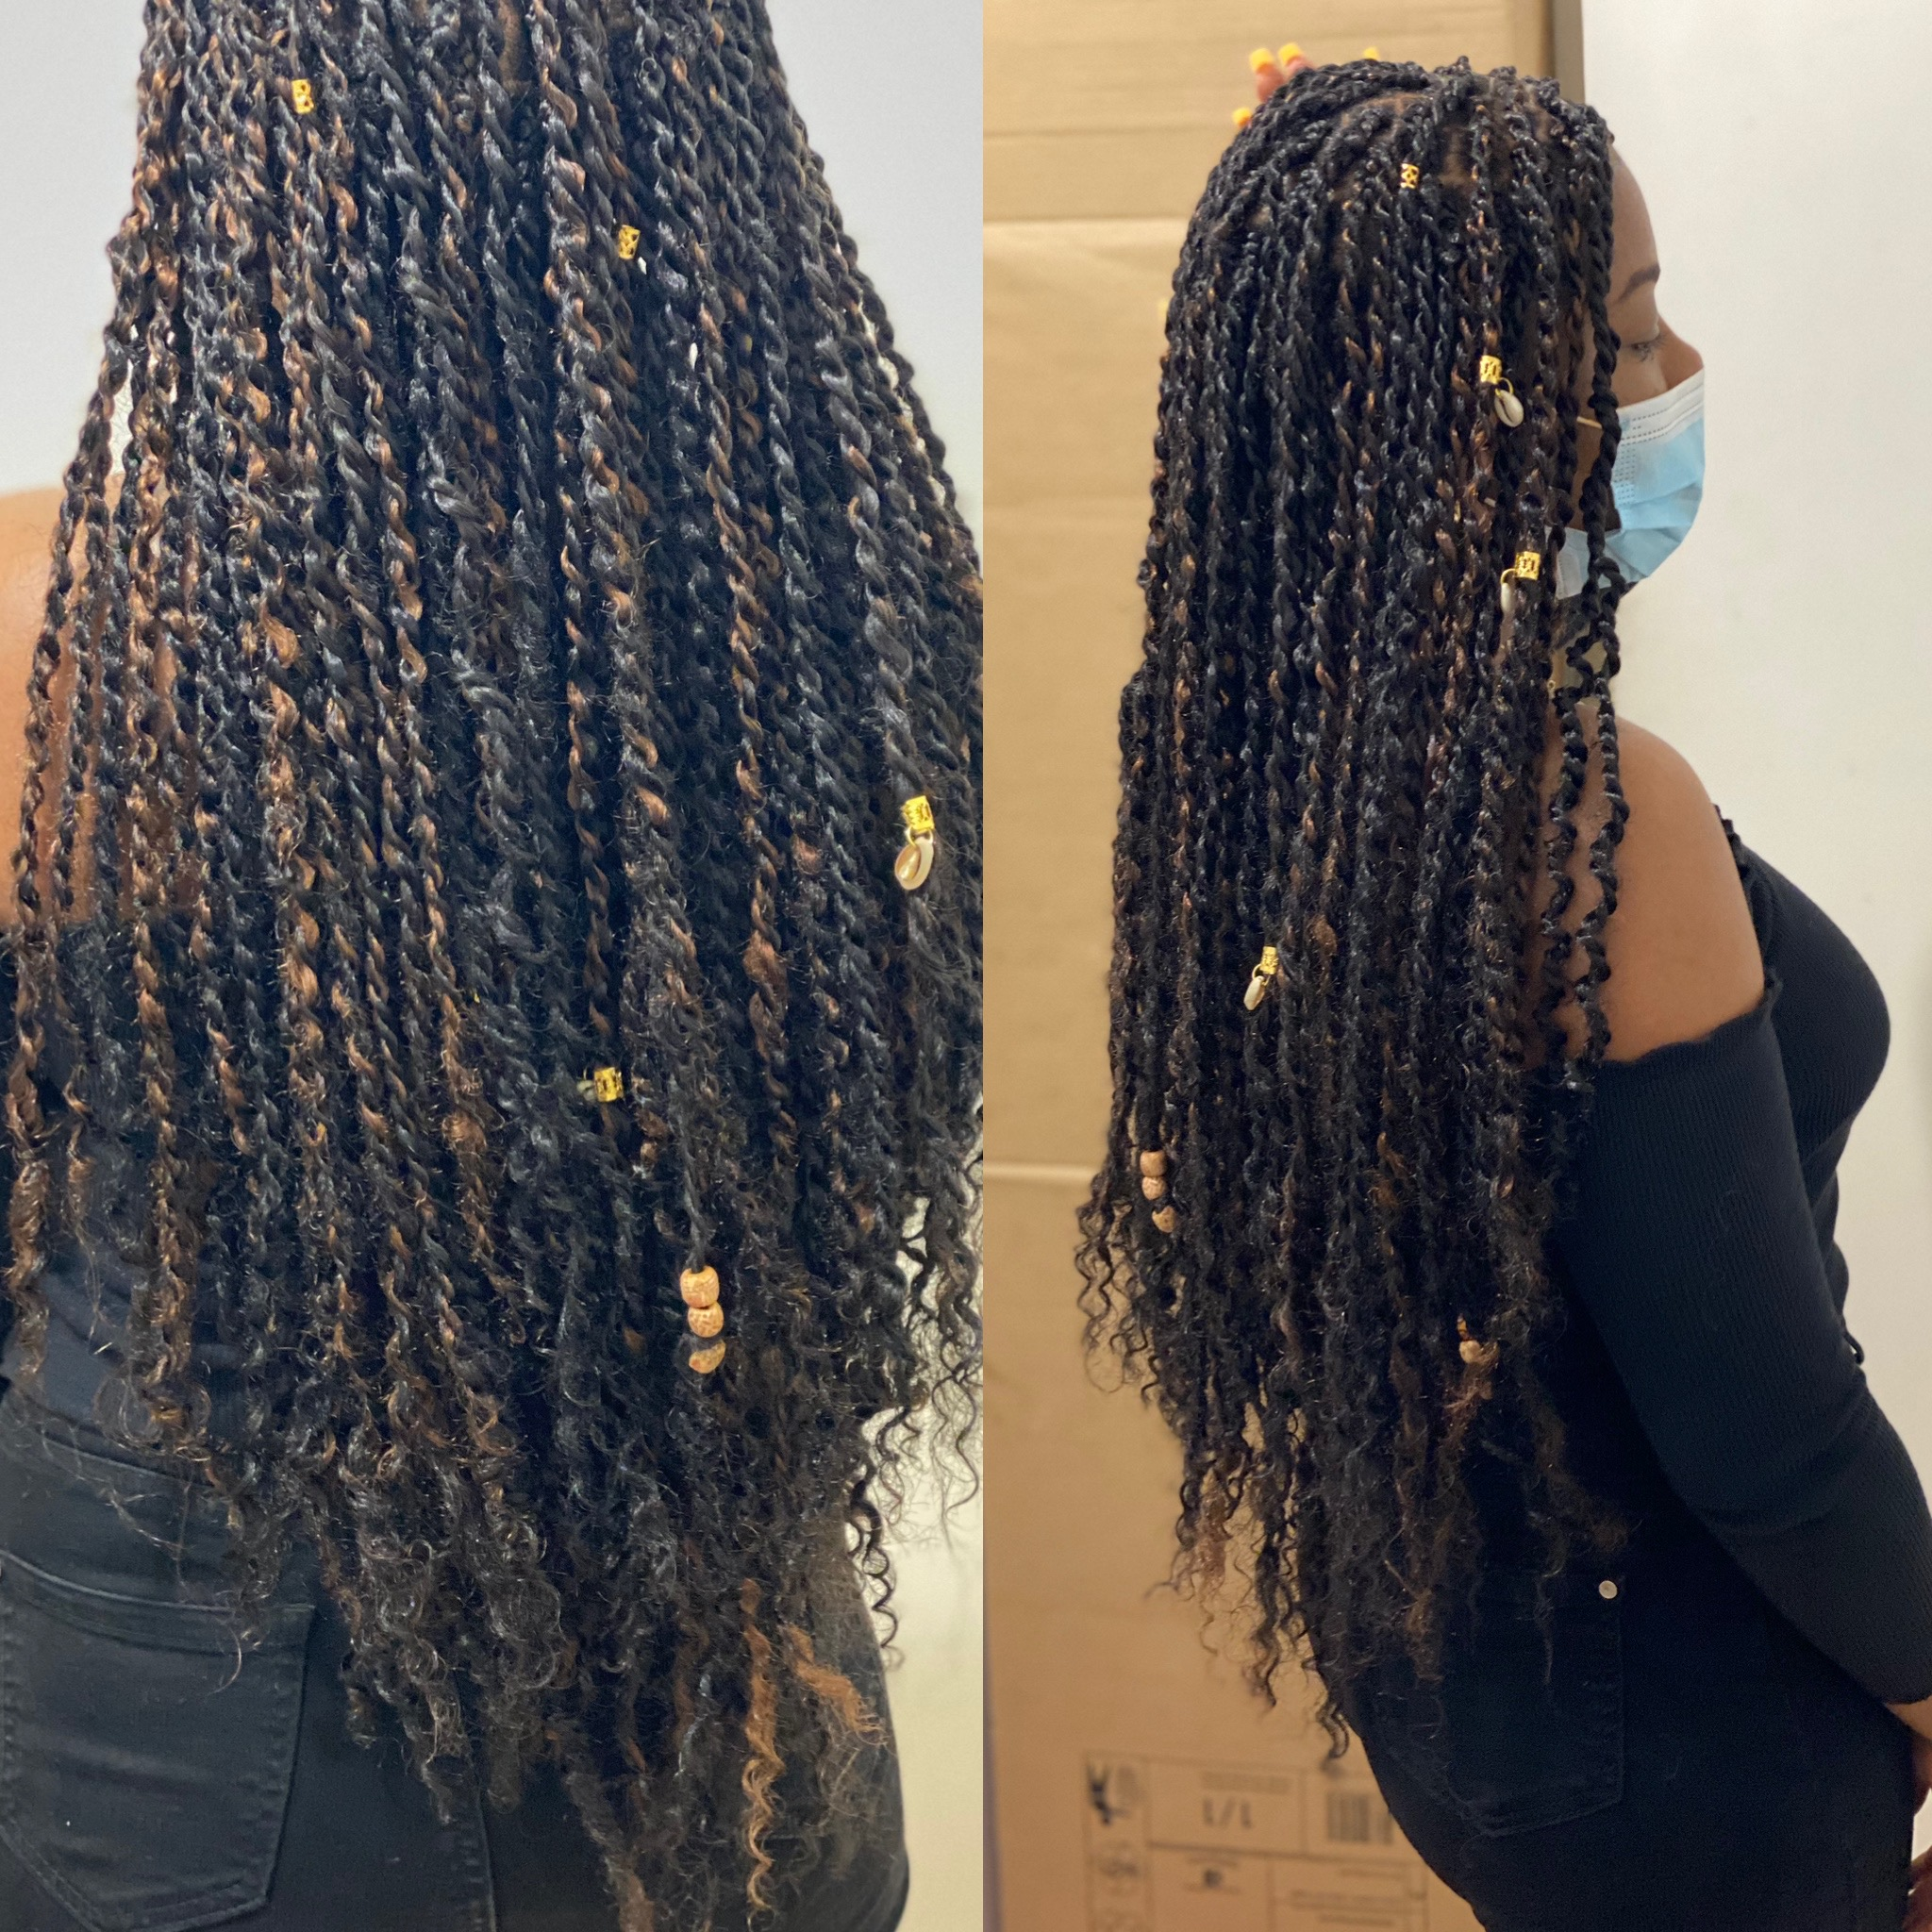 salon de coiffure afro tresse tresses box braids crochet braids vanilles tissages paris 75 77 78 91 92 93 94 95 WQCNQJFK